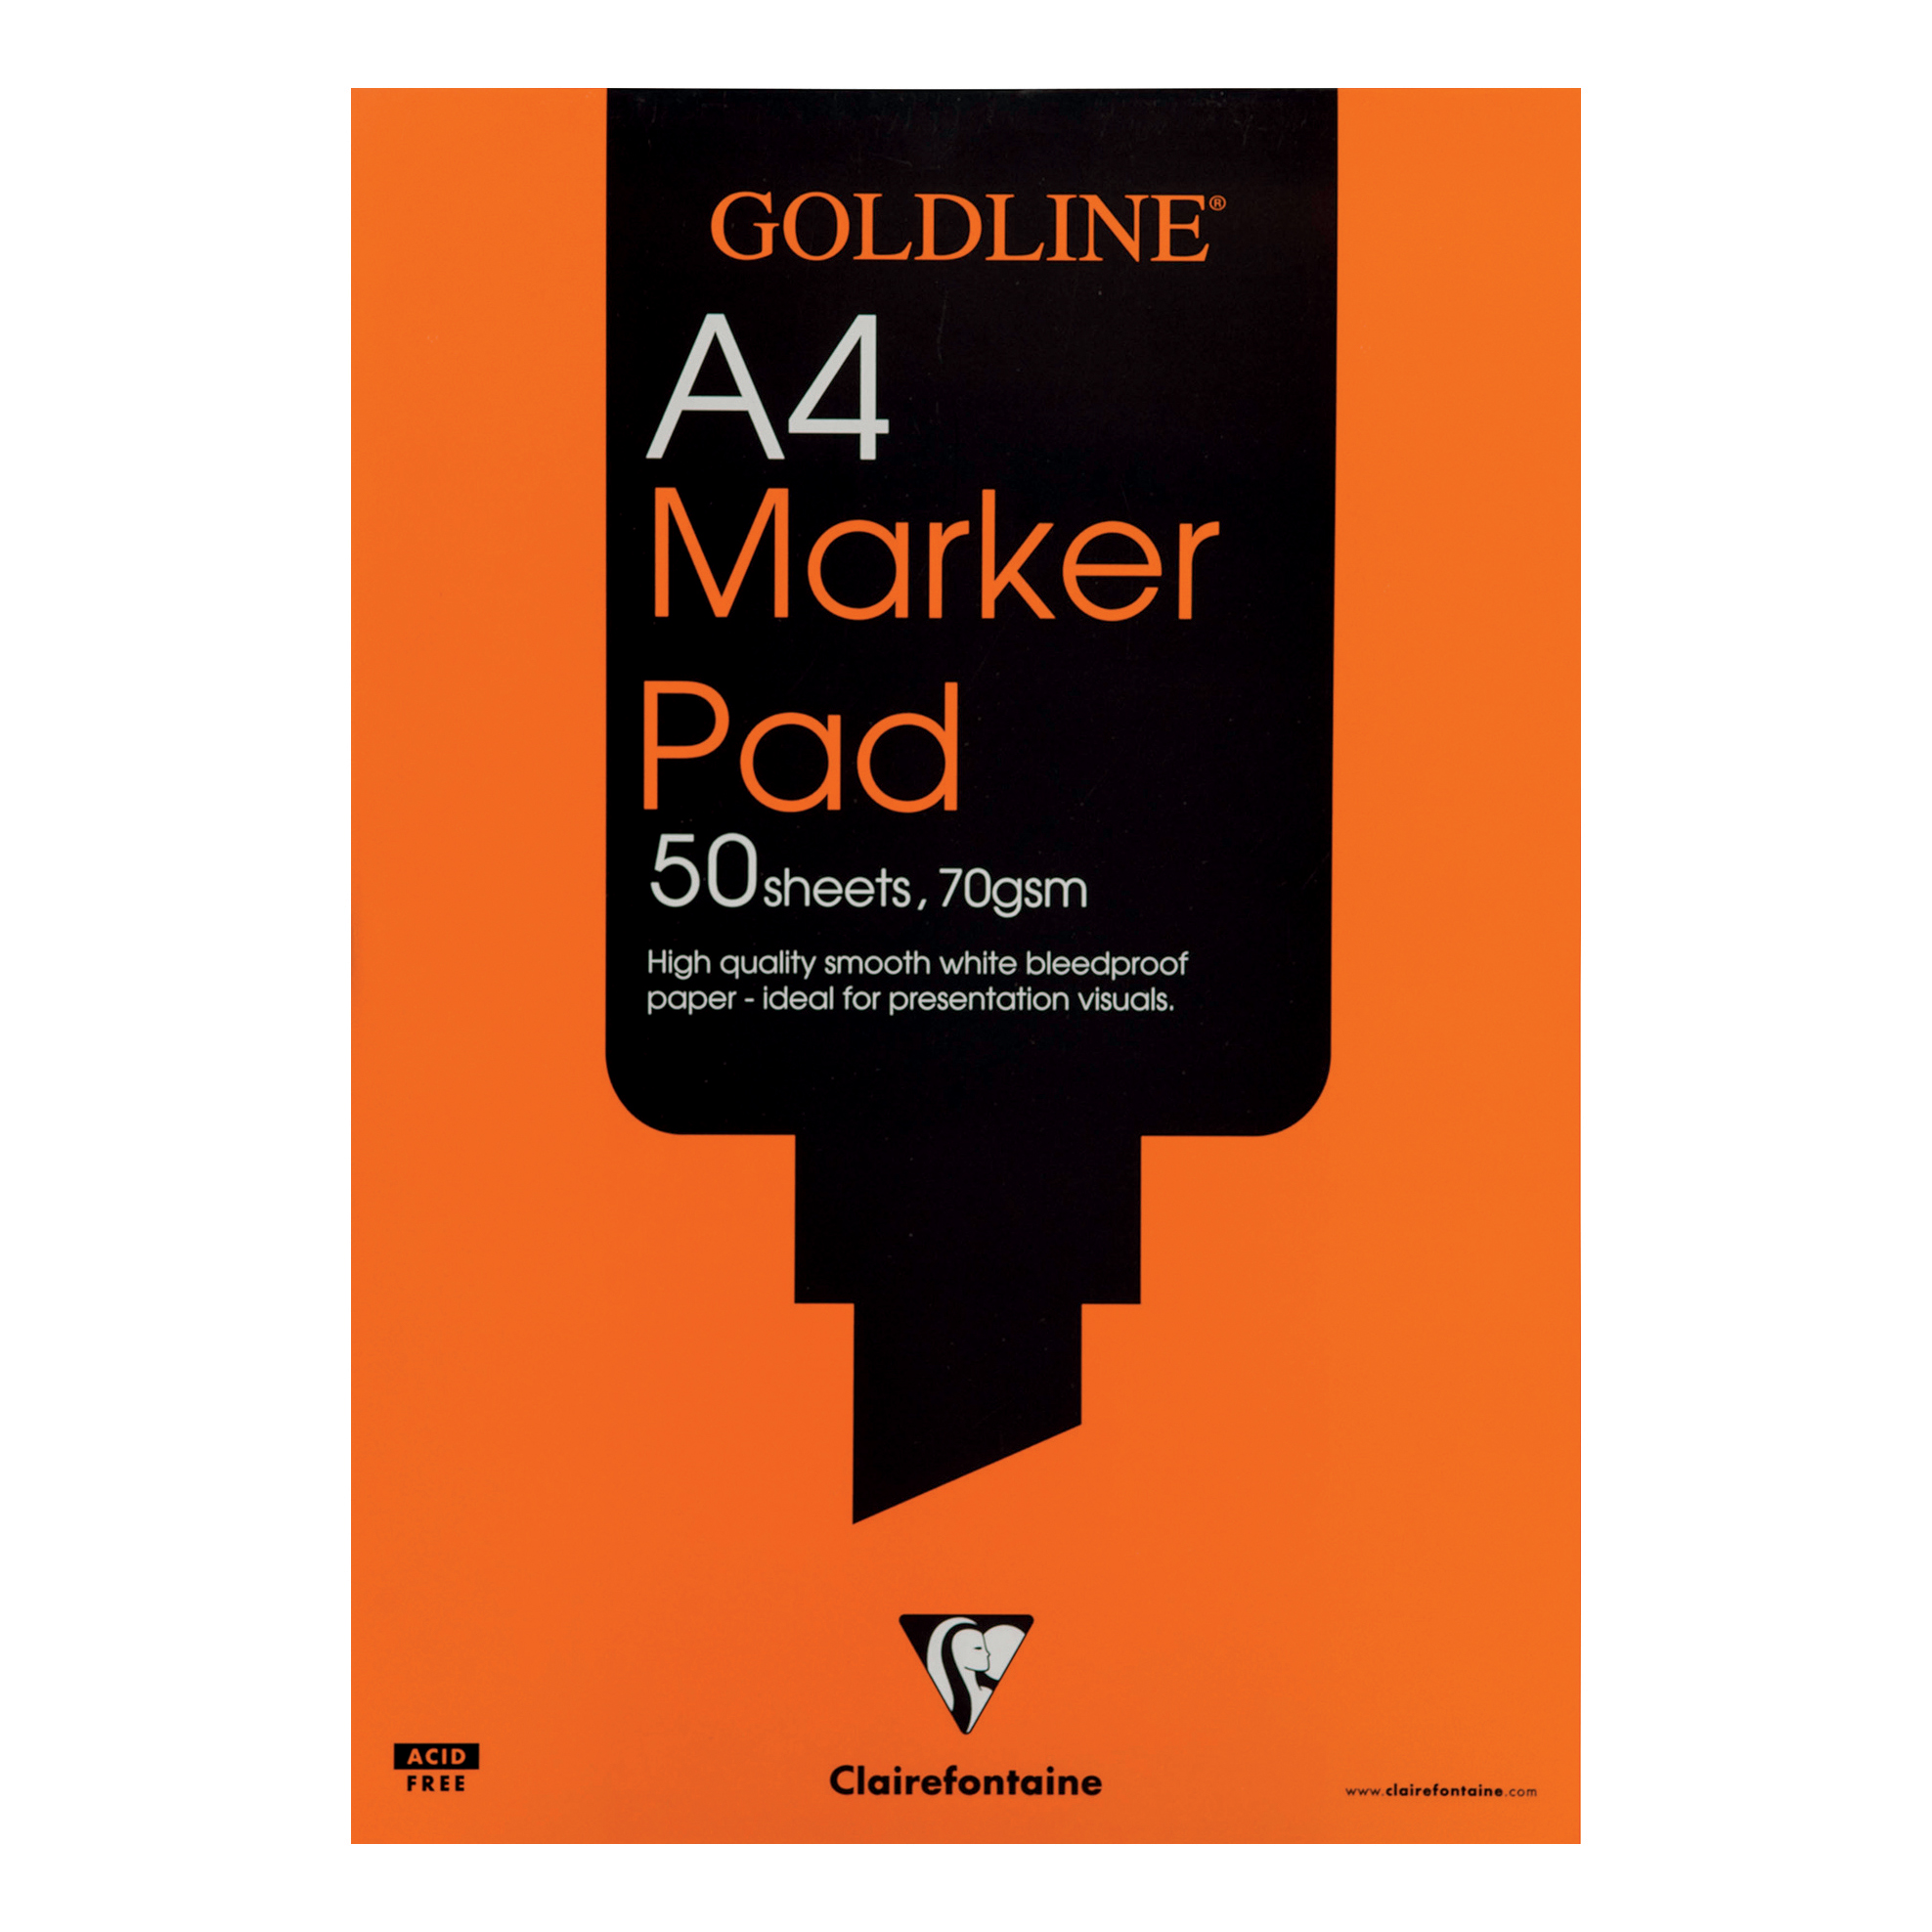 Paper pads or notebooks Goldline Bleedproof Marker Pad 70gsm Acid-free Paper 50 Sheets A4 White Ref GPB1A4Z Pack 5